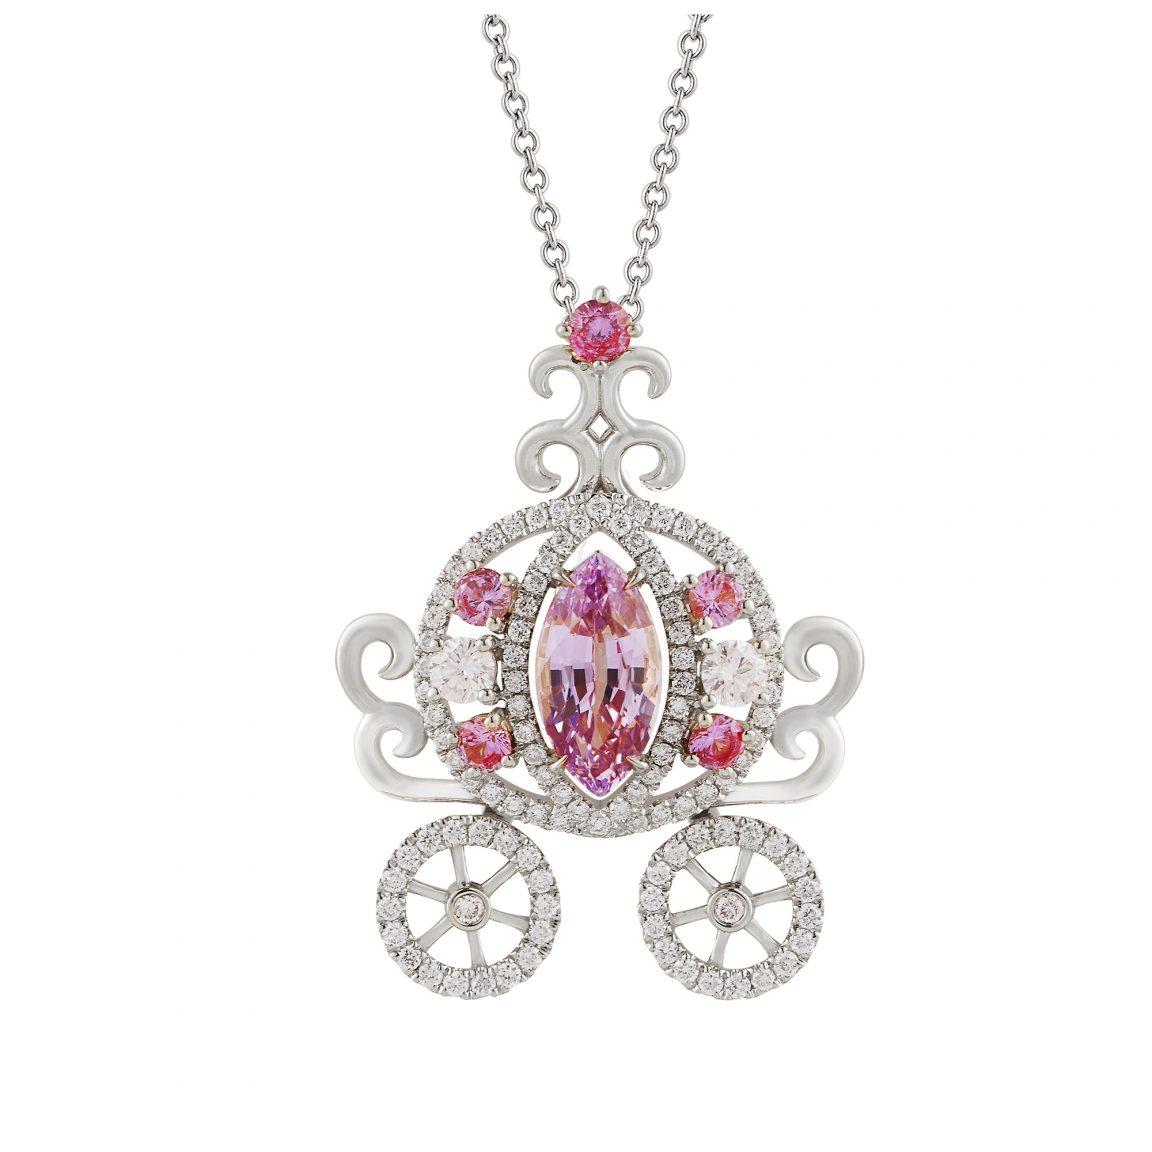 The Dream Carriage Pendant Necklace